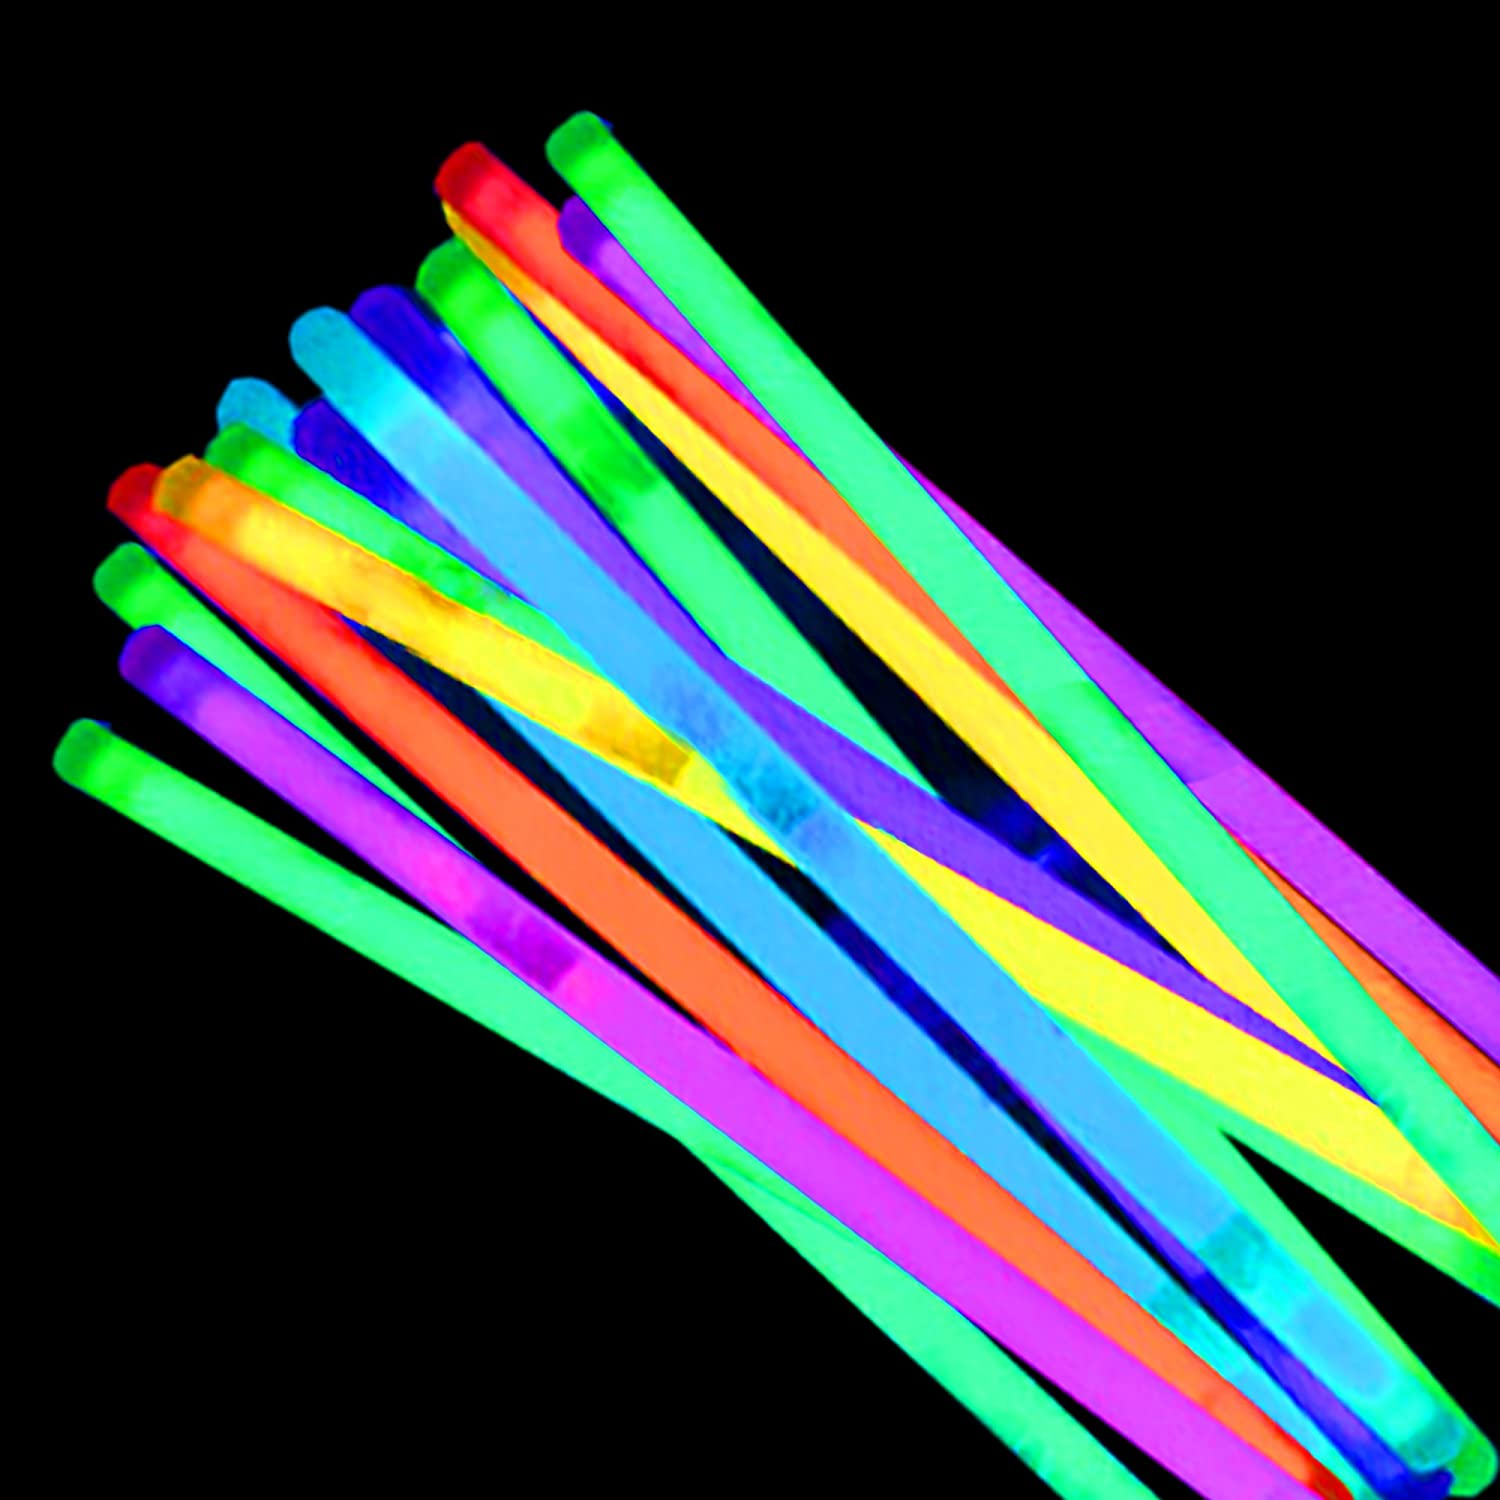 Yellow Select Your Color! Windy City Novelties 50 Pack 4 Premium Glow Stick